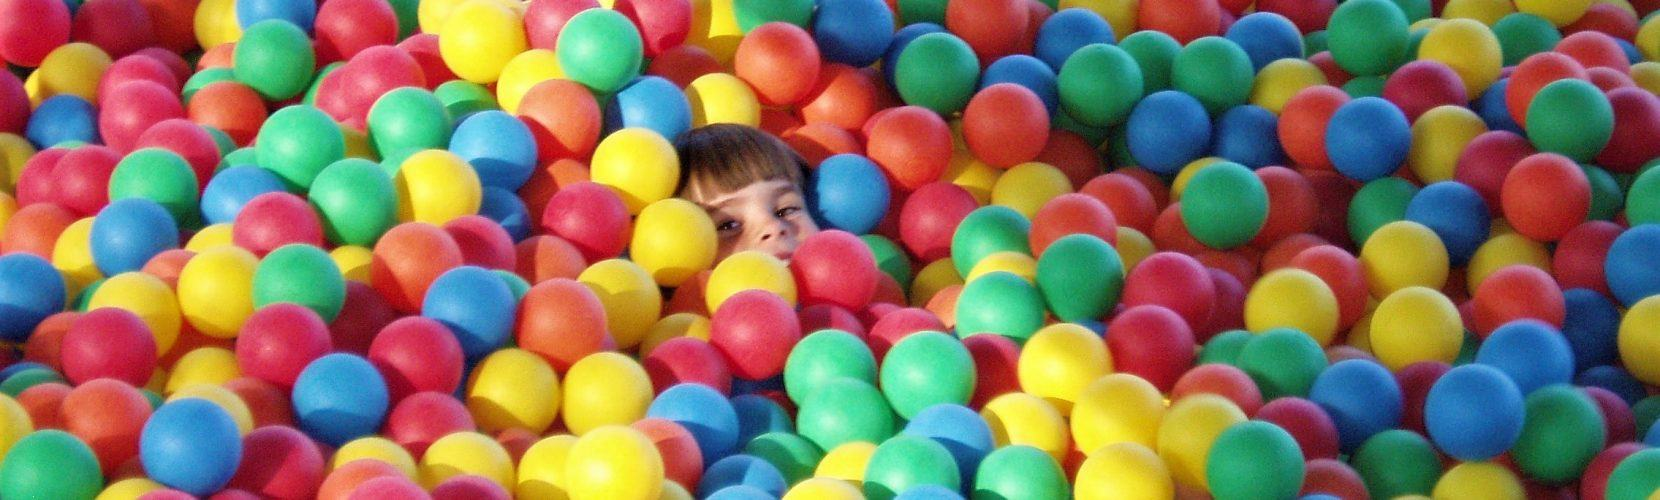 kid in giant ball pit